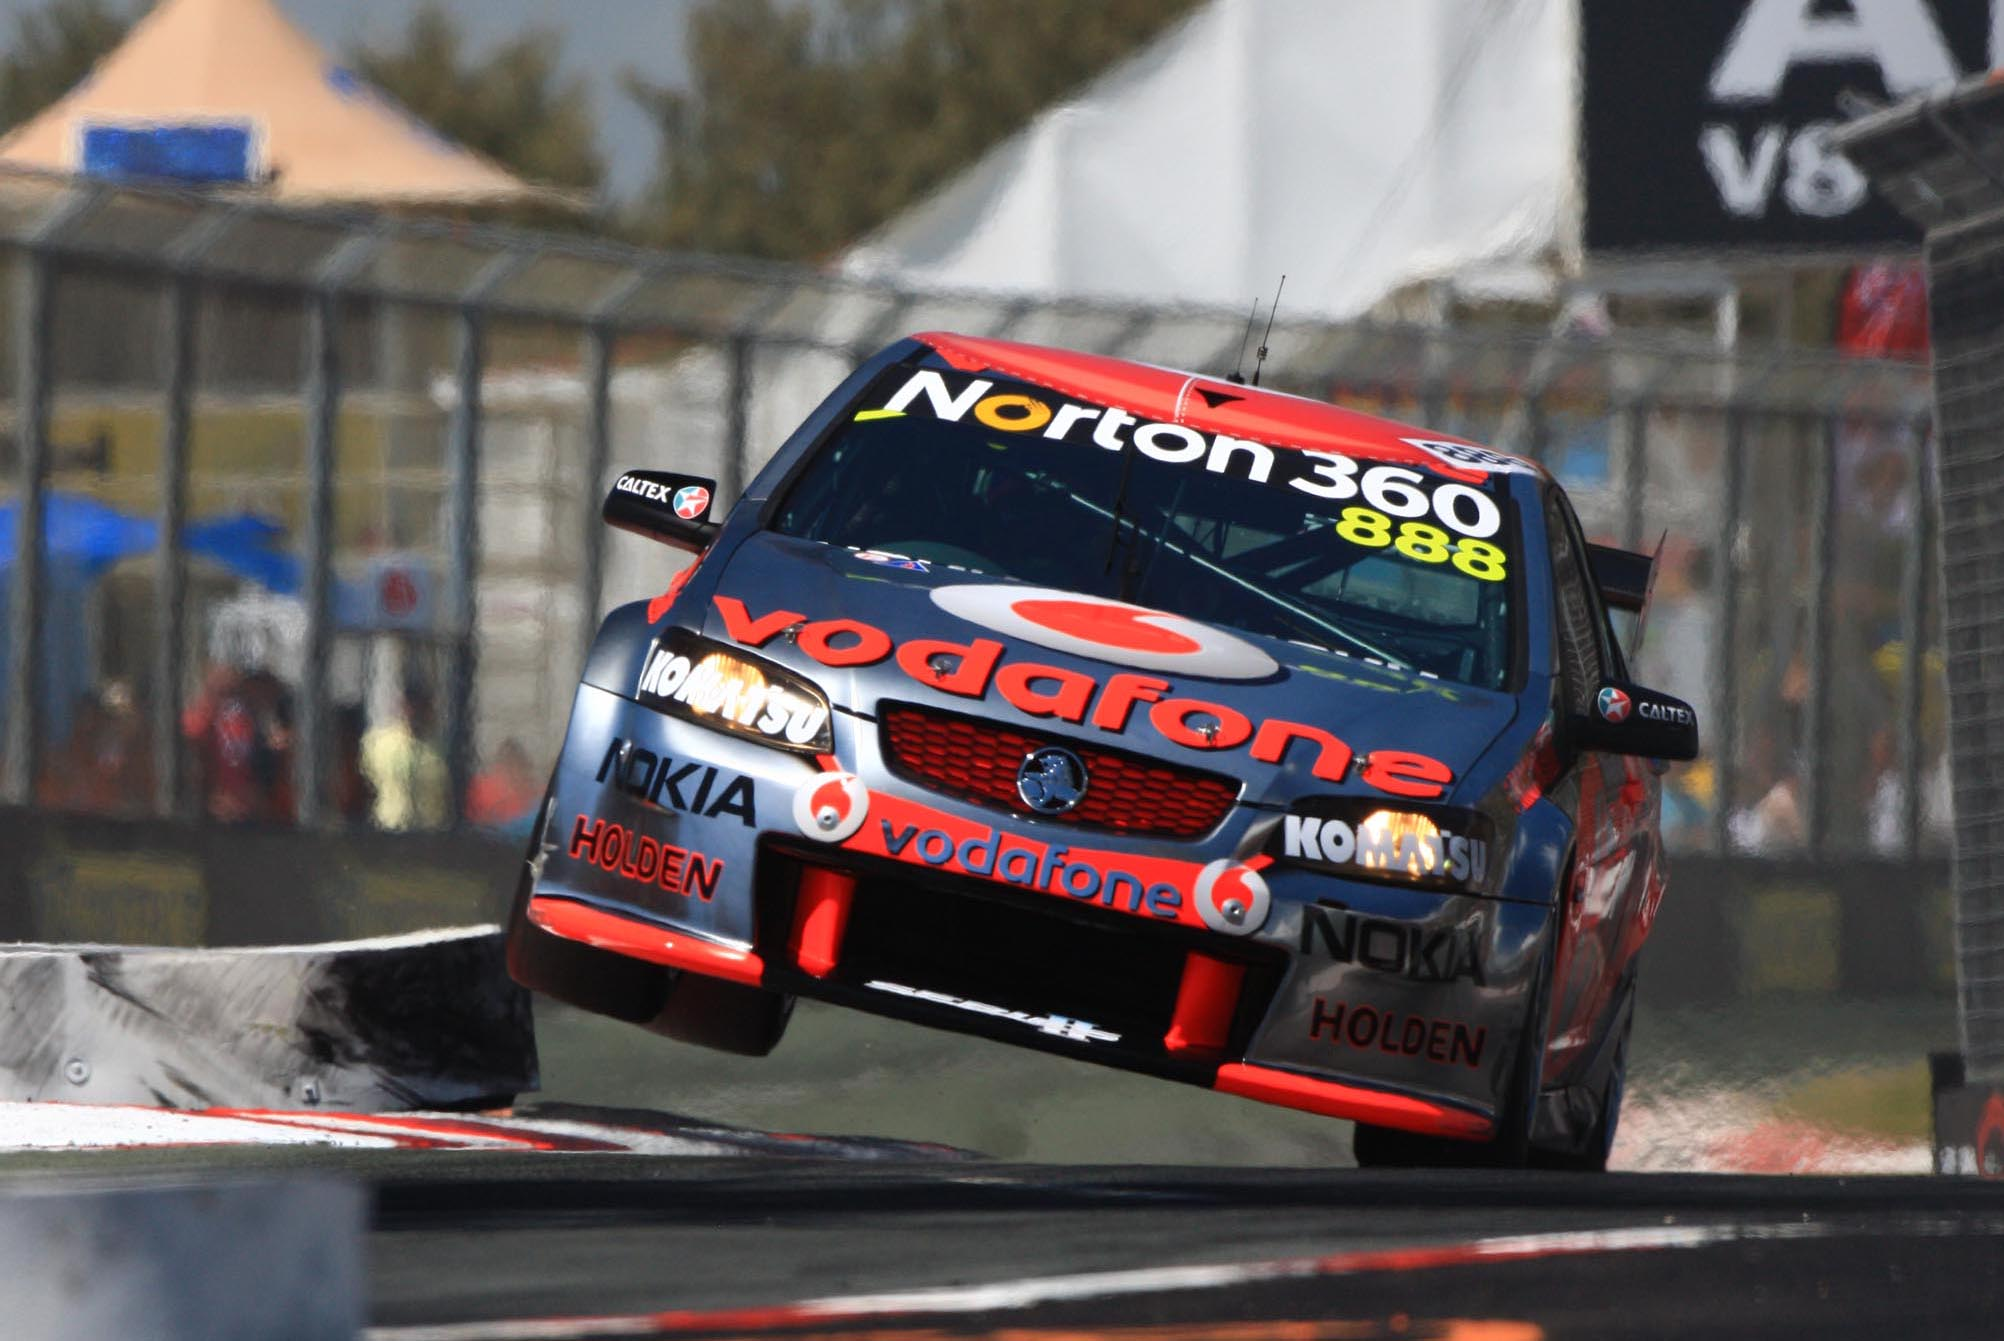 supercars bathurst 2017 with Aussie V8 Supercars Race Racing V 8 Jt on Craig Lowndes likewise Bathurst 1000 Great Race in addition The Big Picture Best Of Grid Girls 2013 together with Mostert Reveals Supercheap Auto Livery in addition 2015 V8 Supercars Teams And Drivers Social Media Guide.